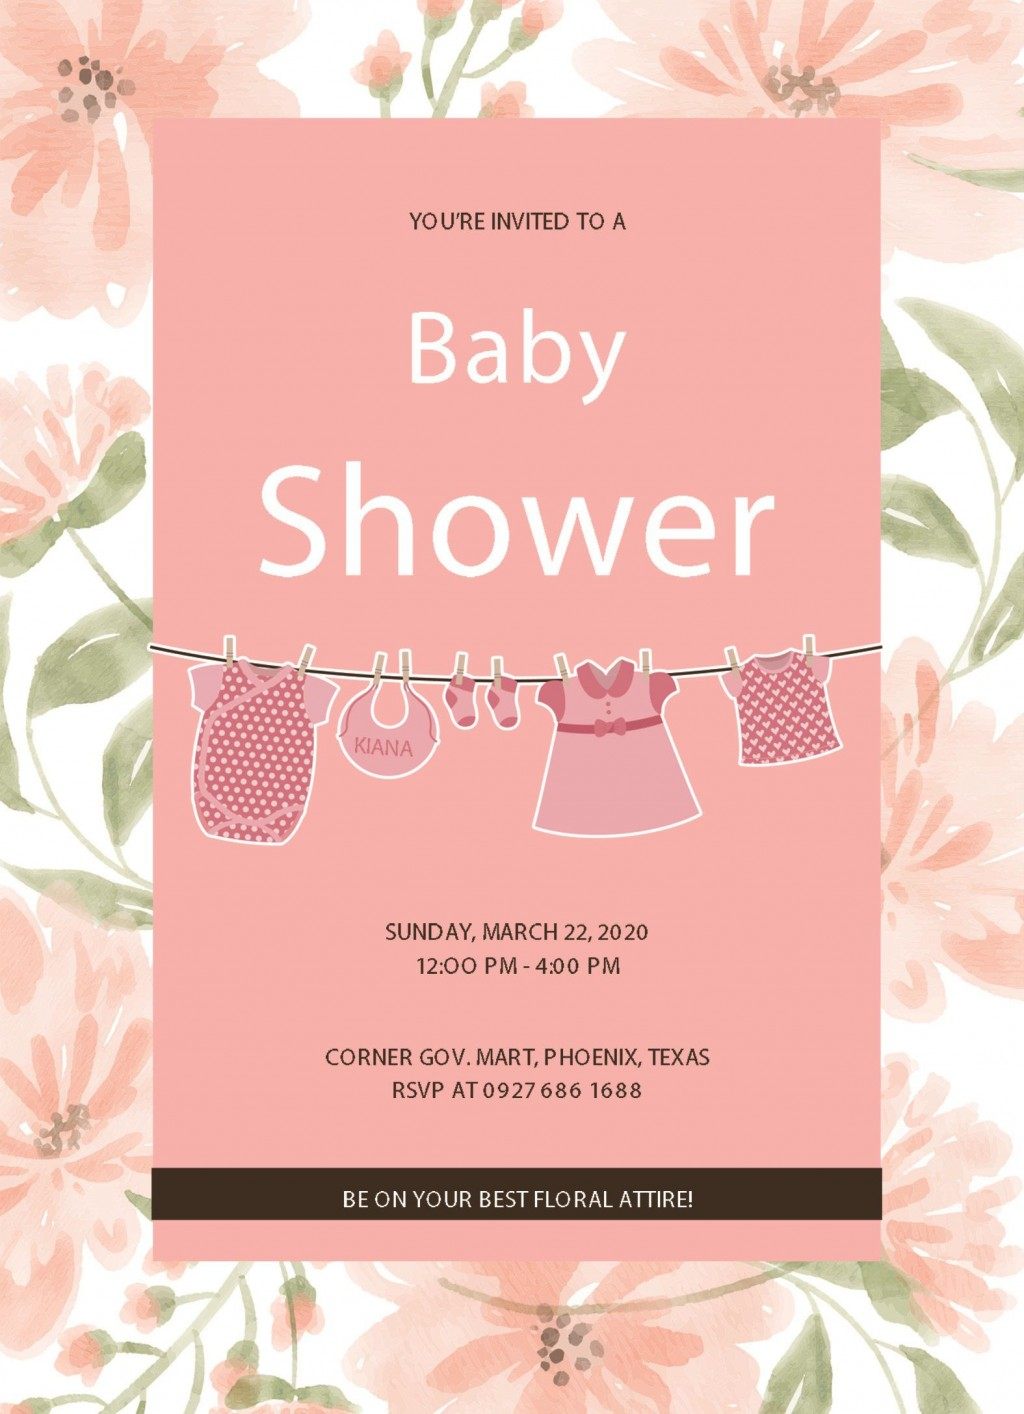 004 Breathtaking Baby Shower Card Template Free Download High Resolution  Indian InvitationLarge